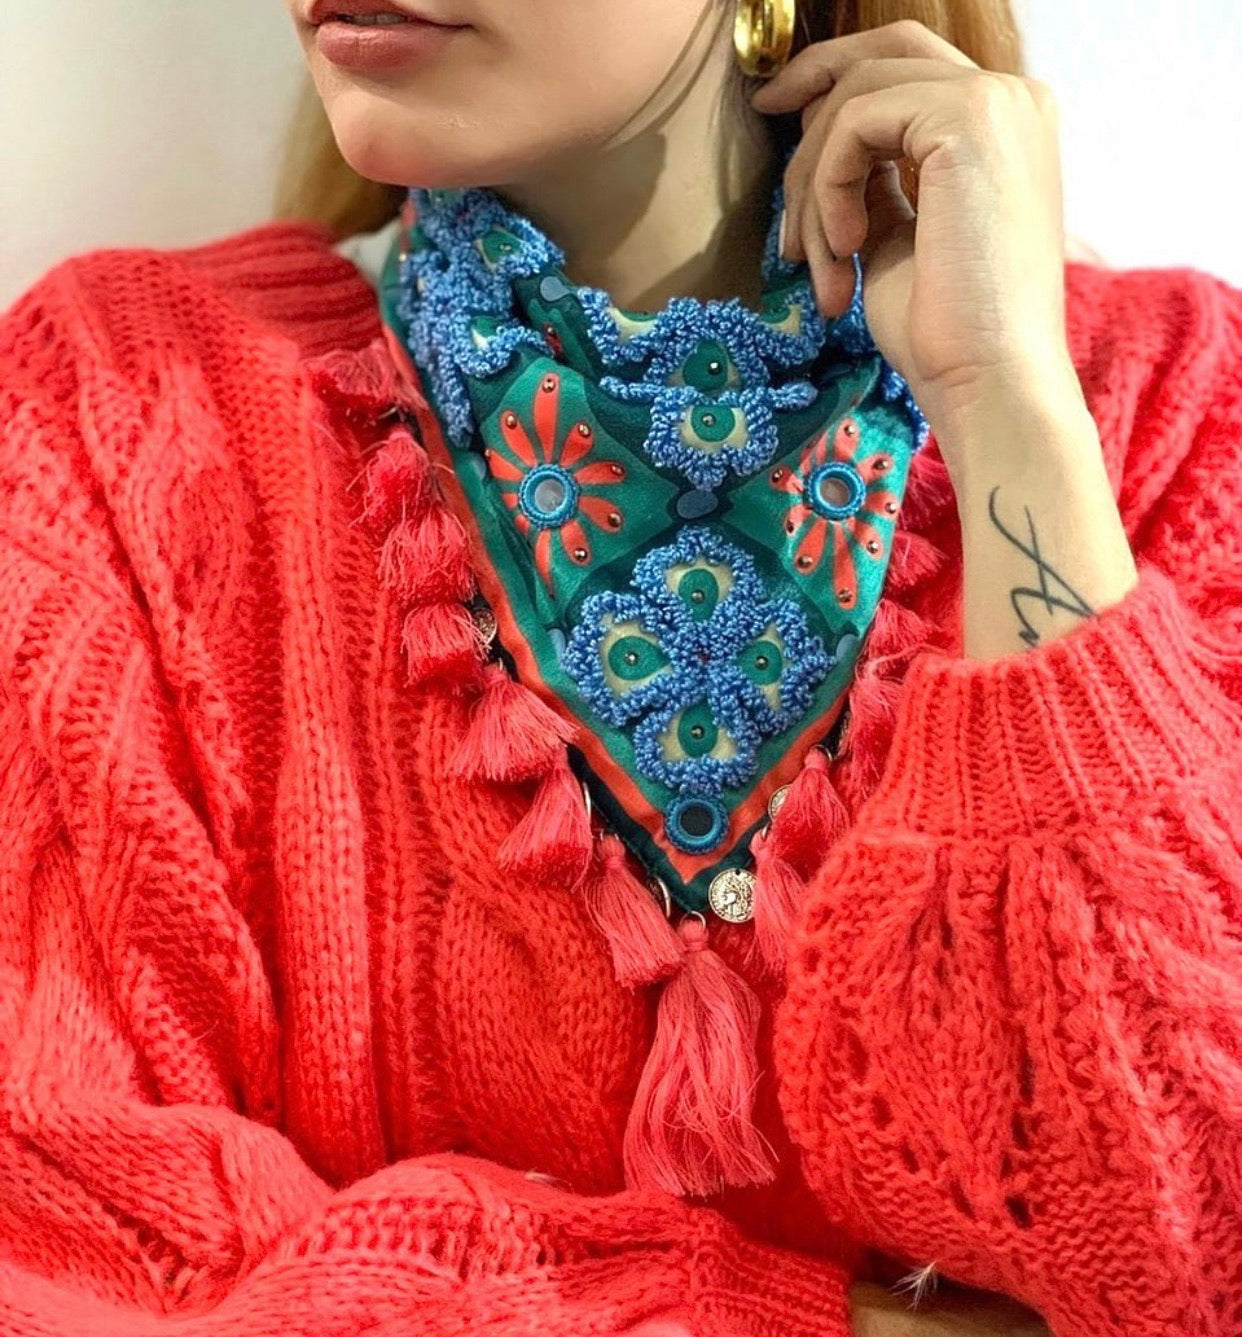 Gise scarf and mouth/nose cover